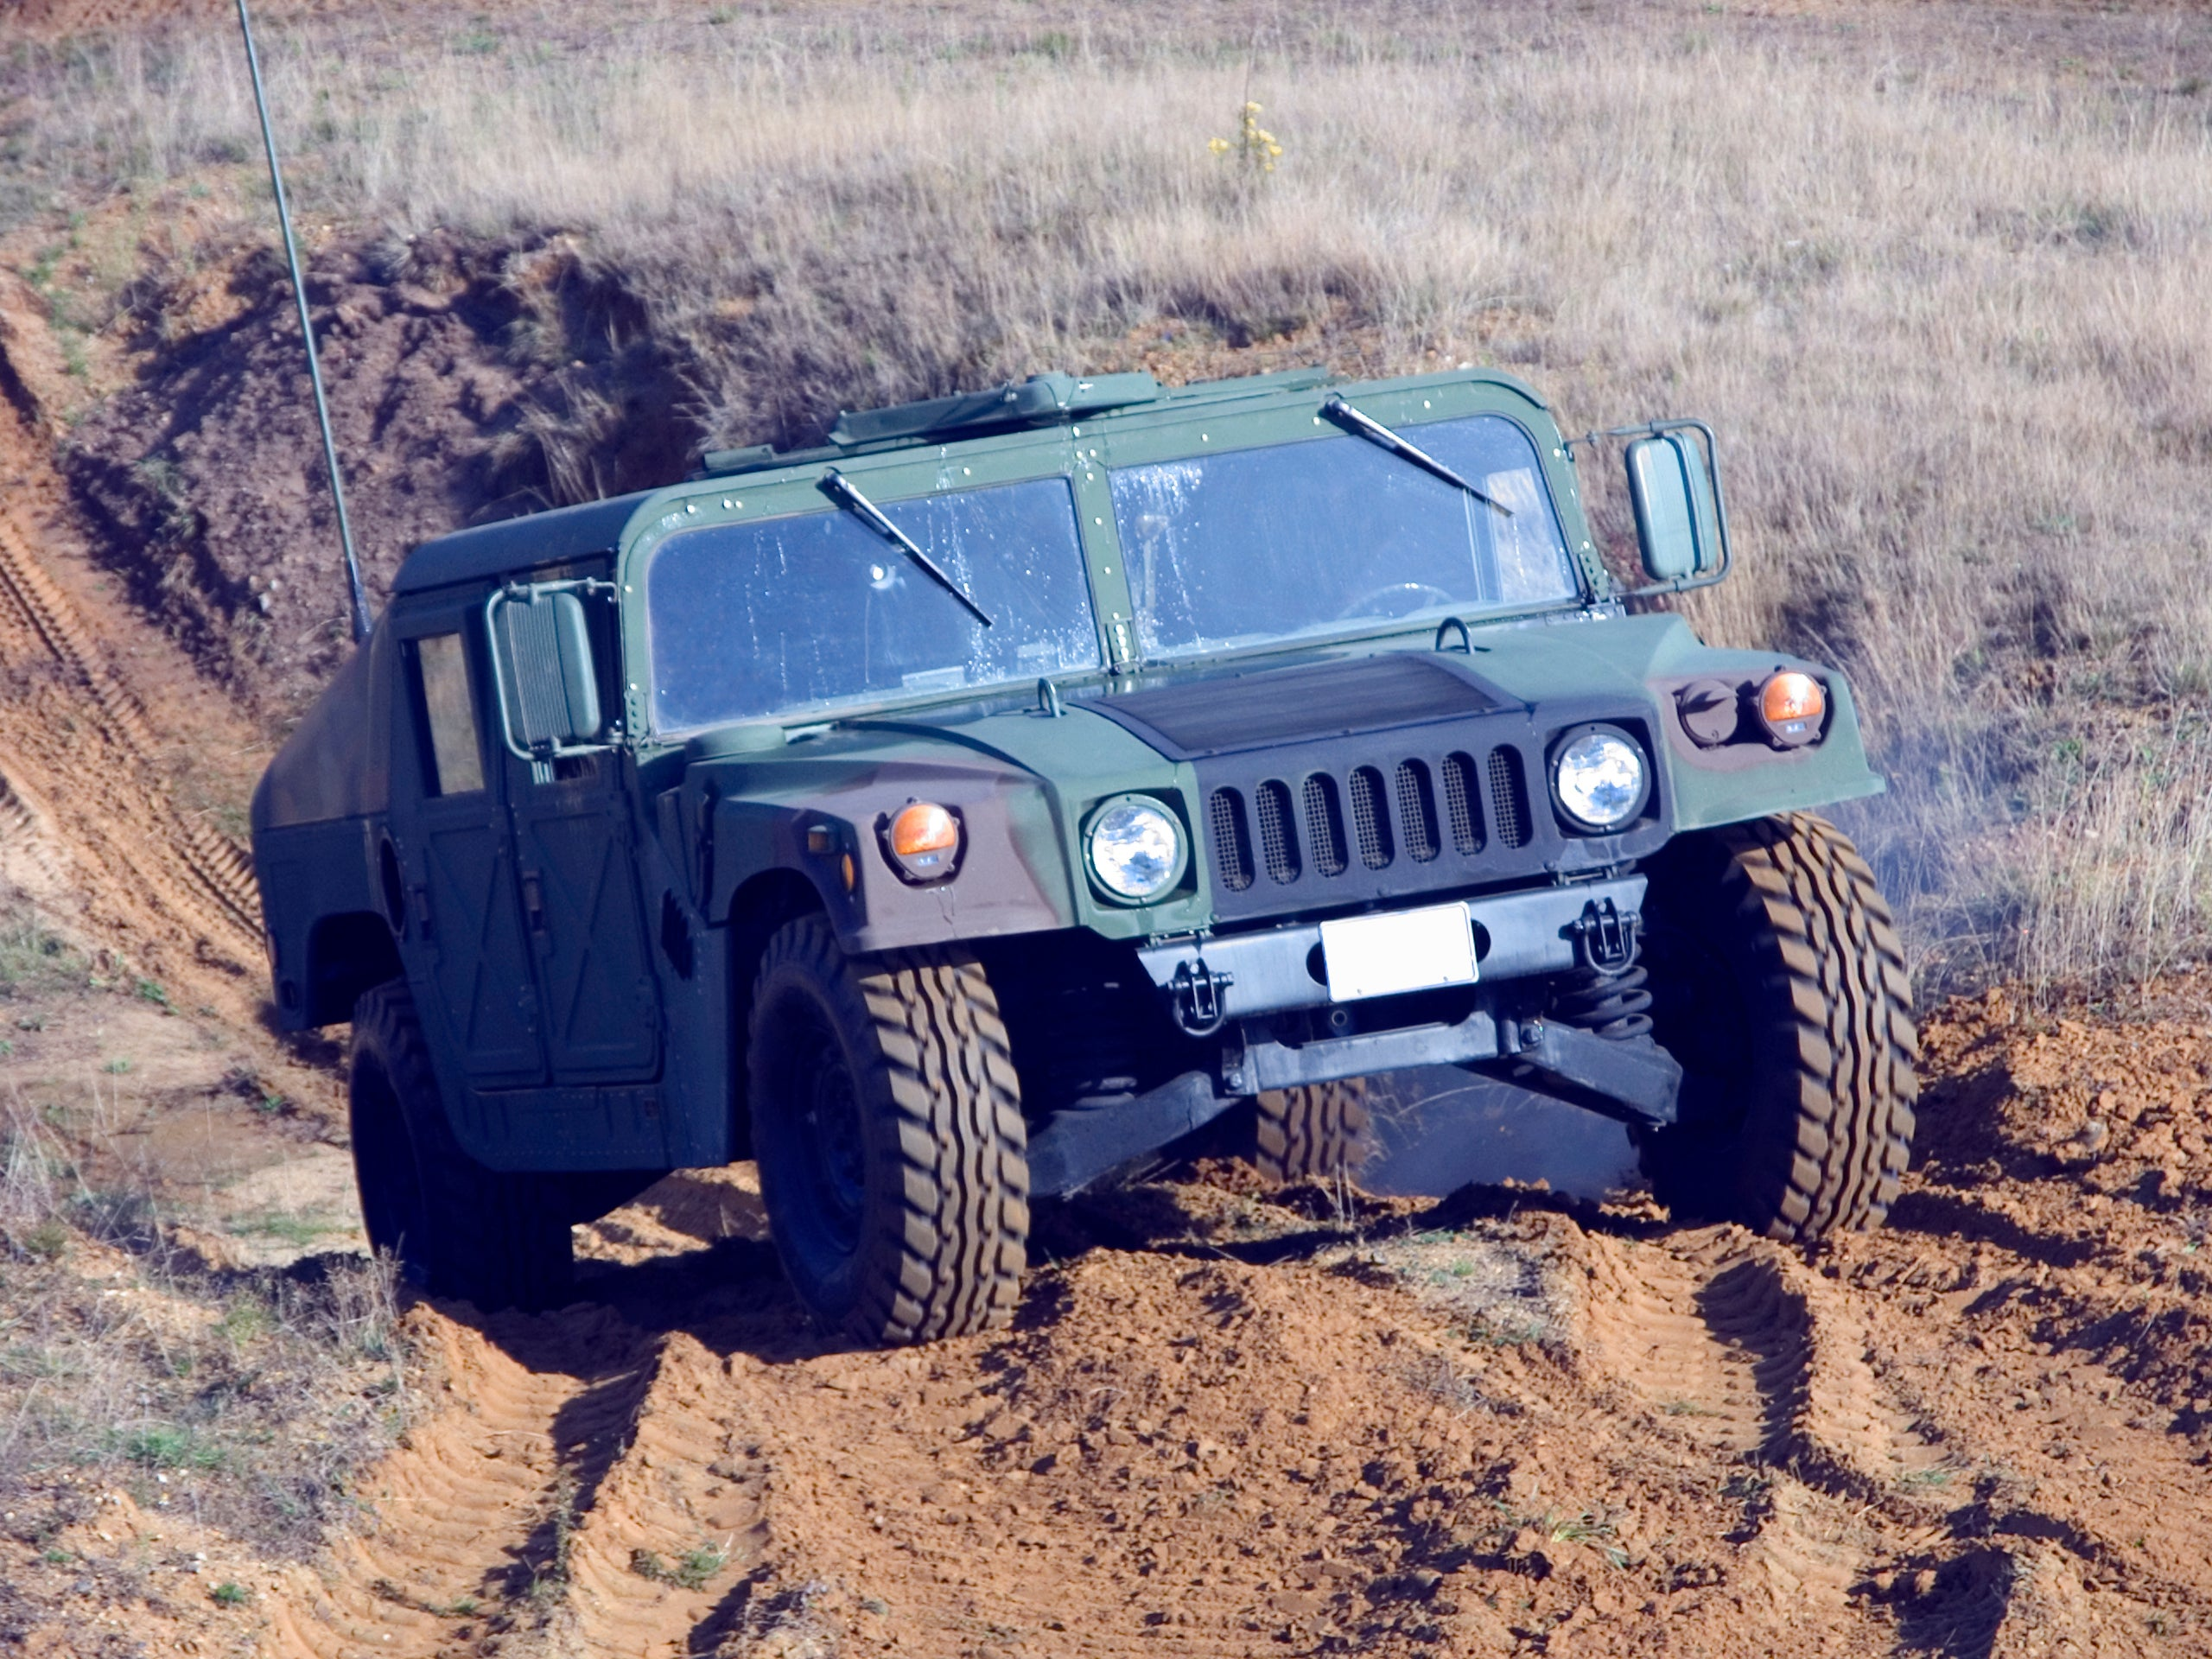 Army Surplus: General Motors Won't Sell You a Humvee -- but the U.S. Army Will -- The Motley Fool